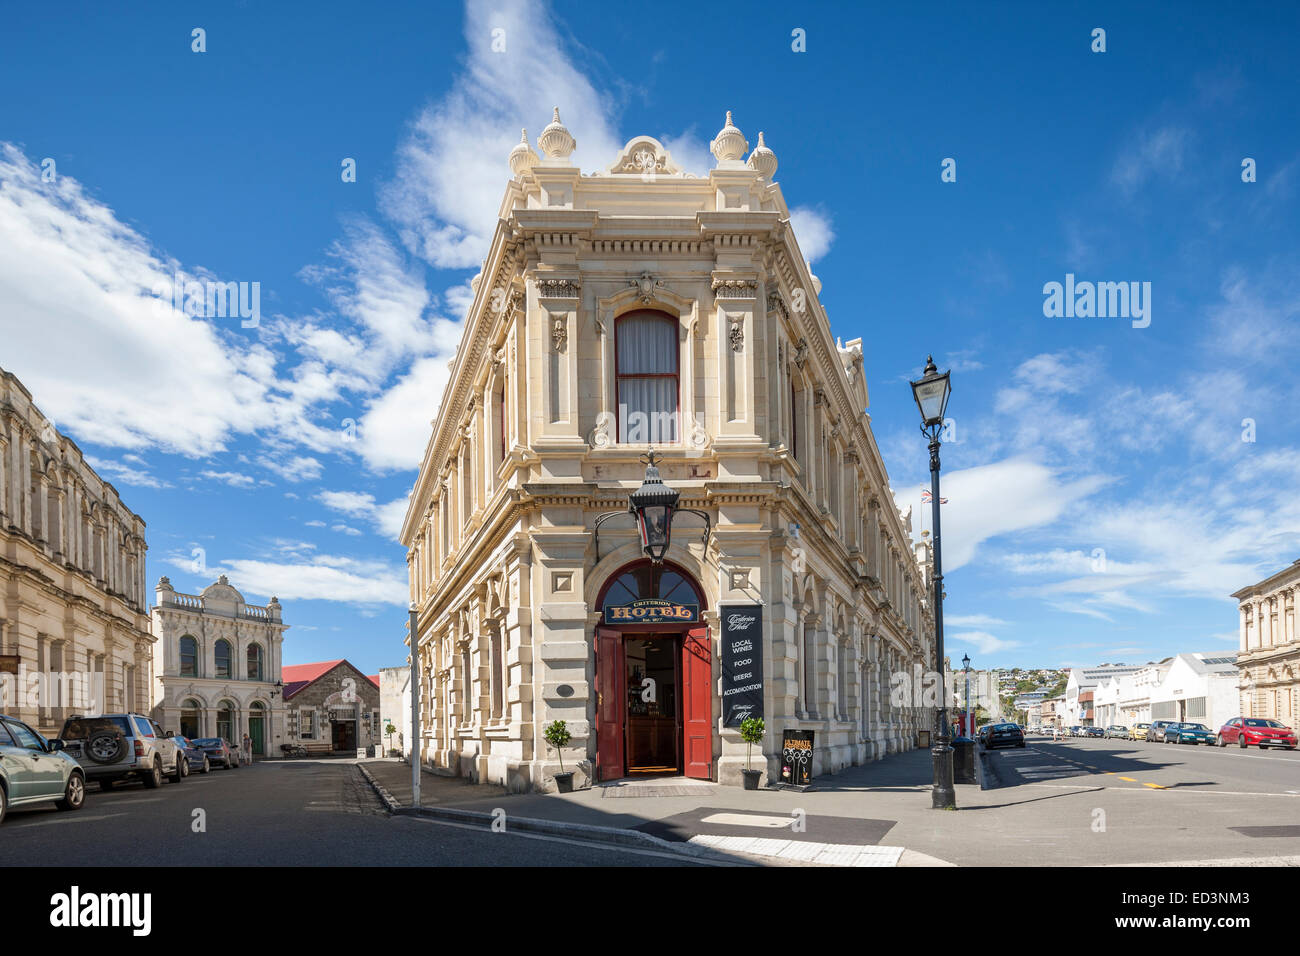 New Zealand Oamaru. The Criterion Hotel and other old Victorian style buildings in the Historic Harbour Harbor district. - Stock Image